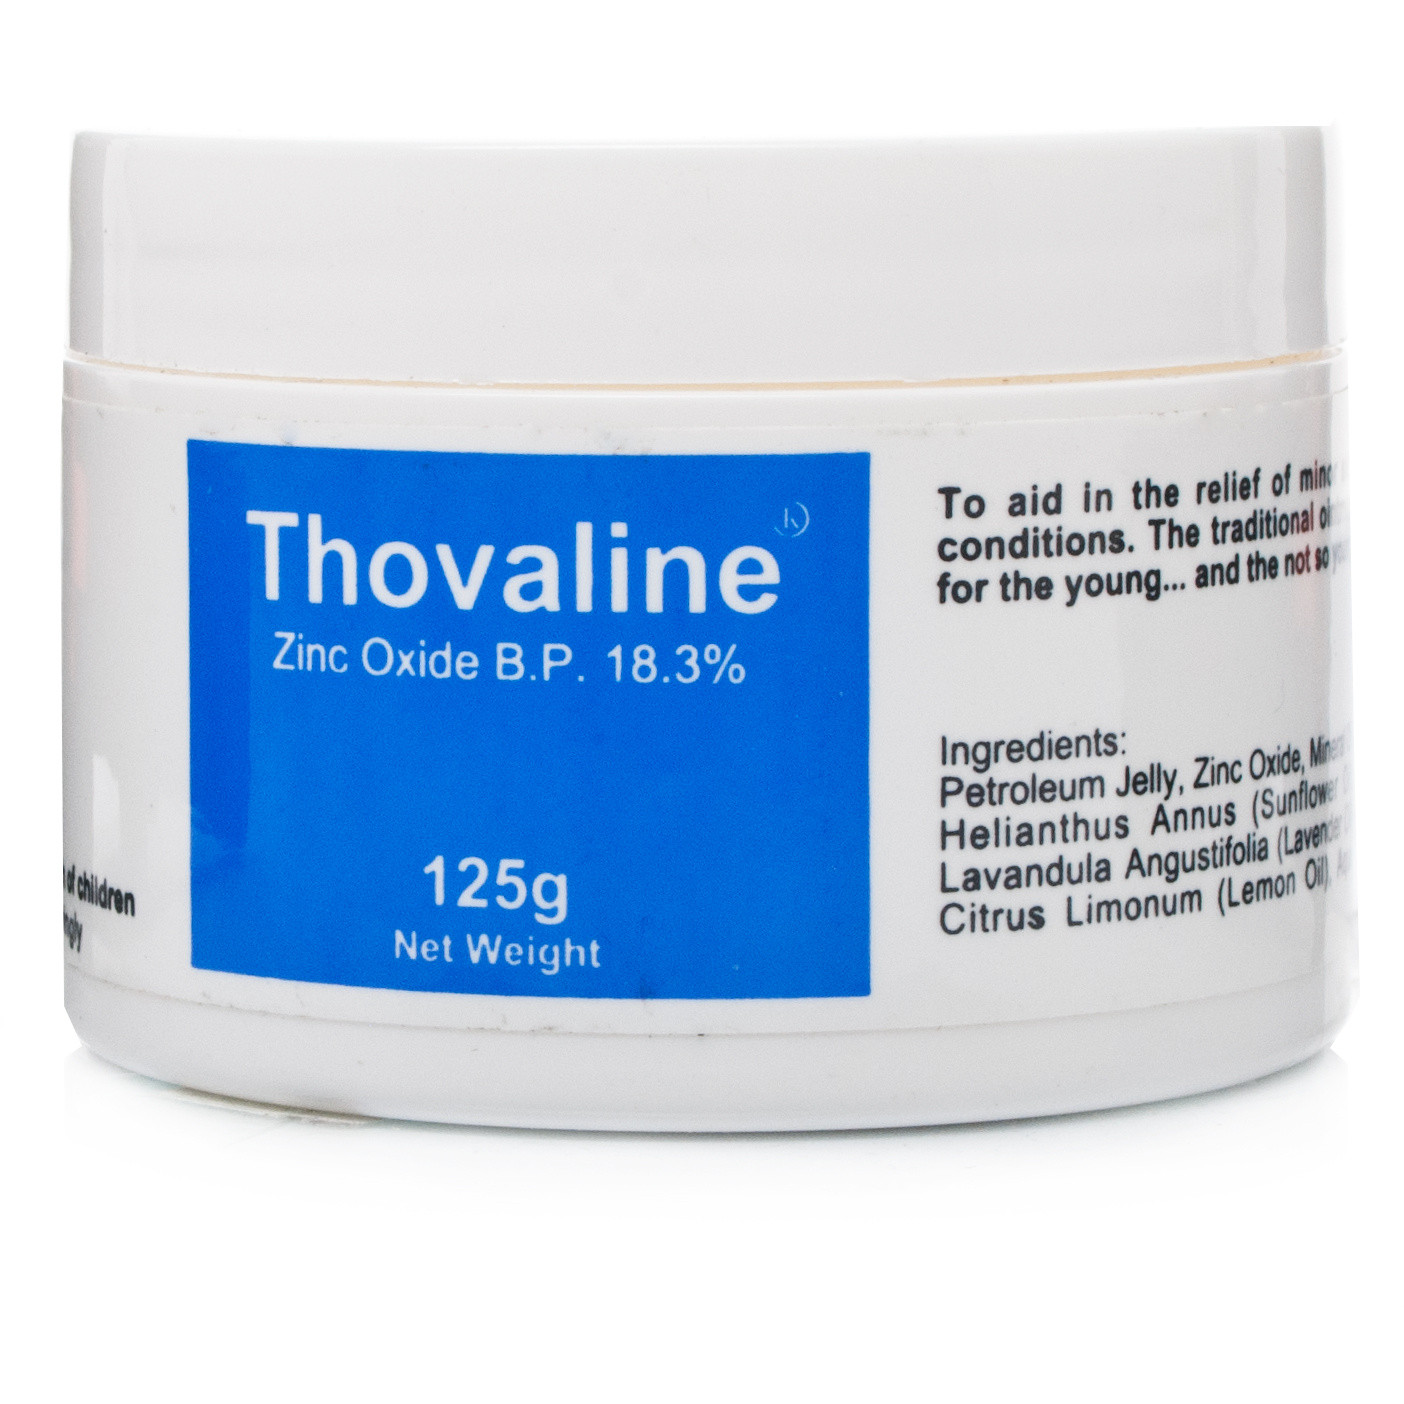 Thovaline Ointment